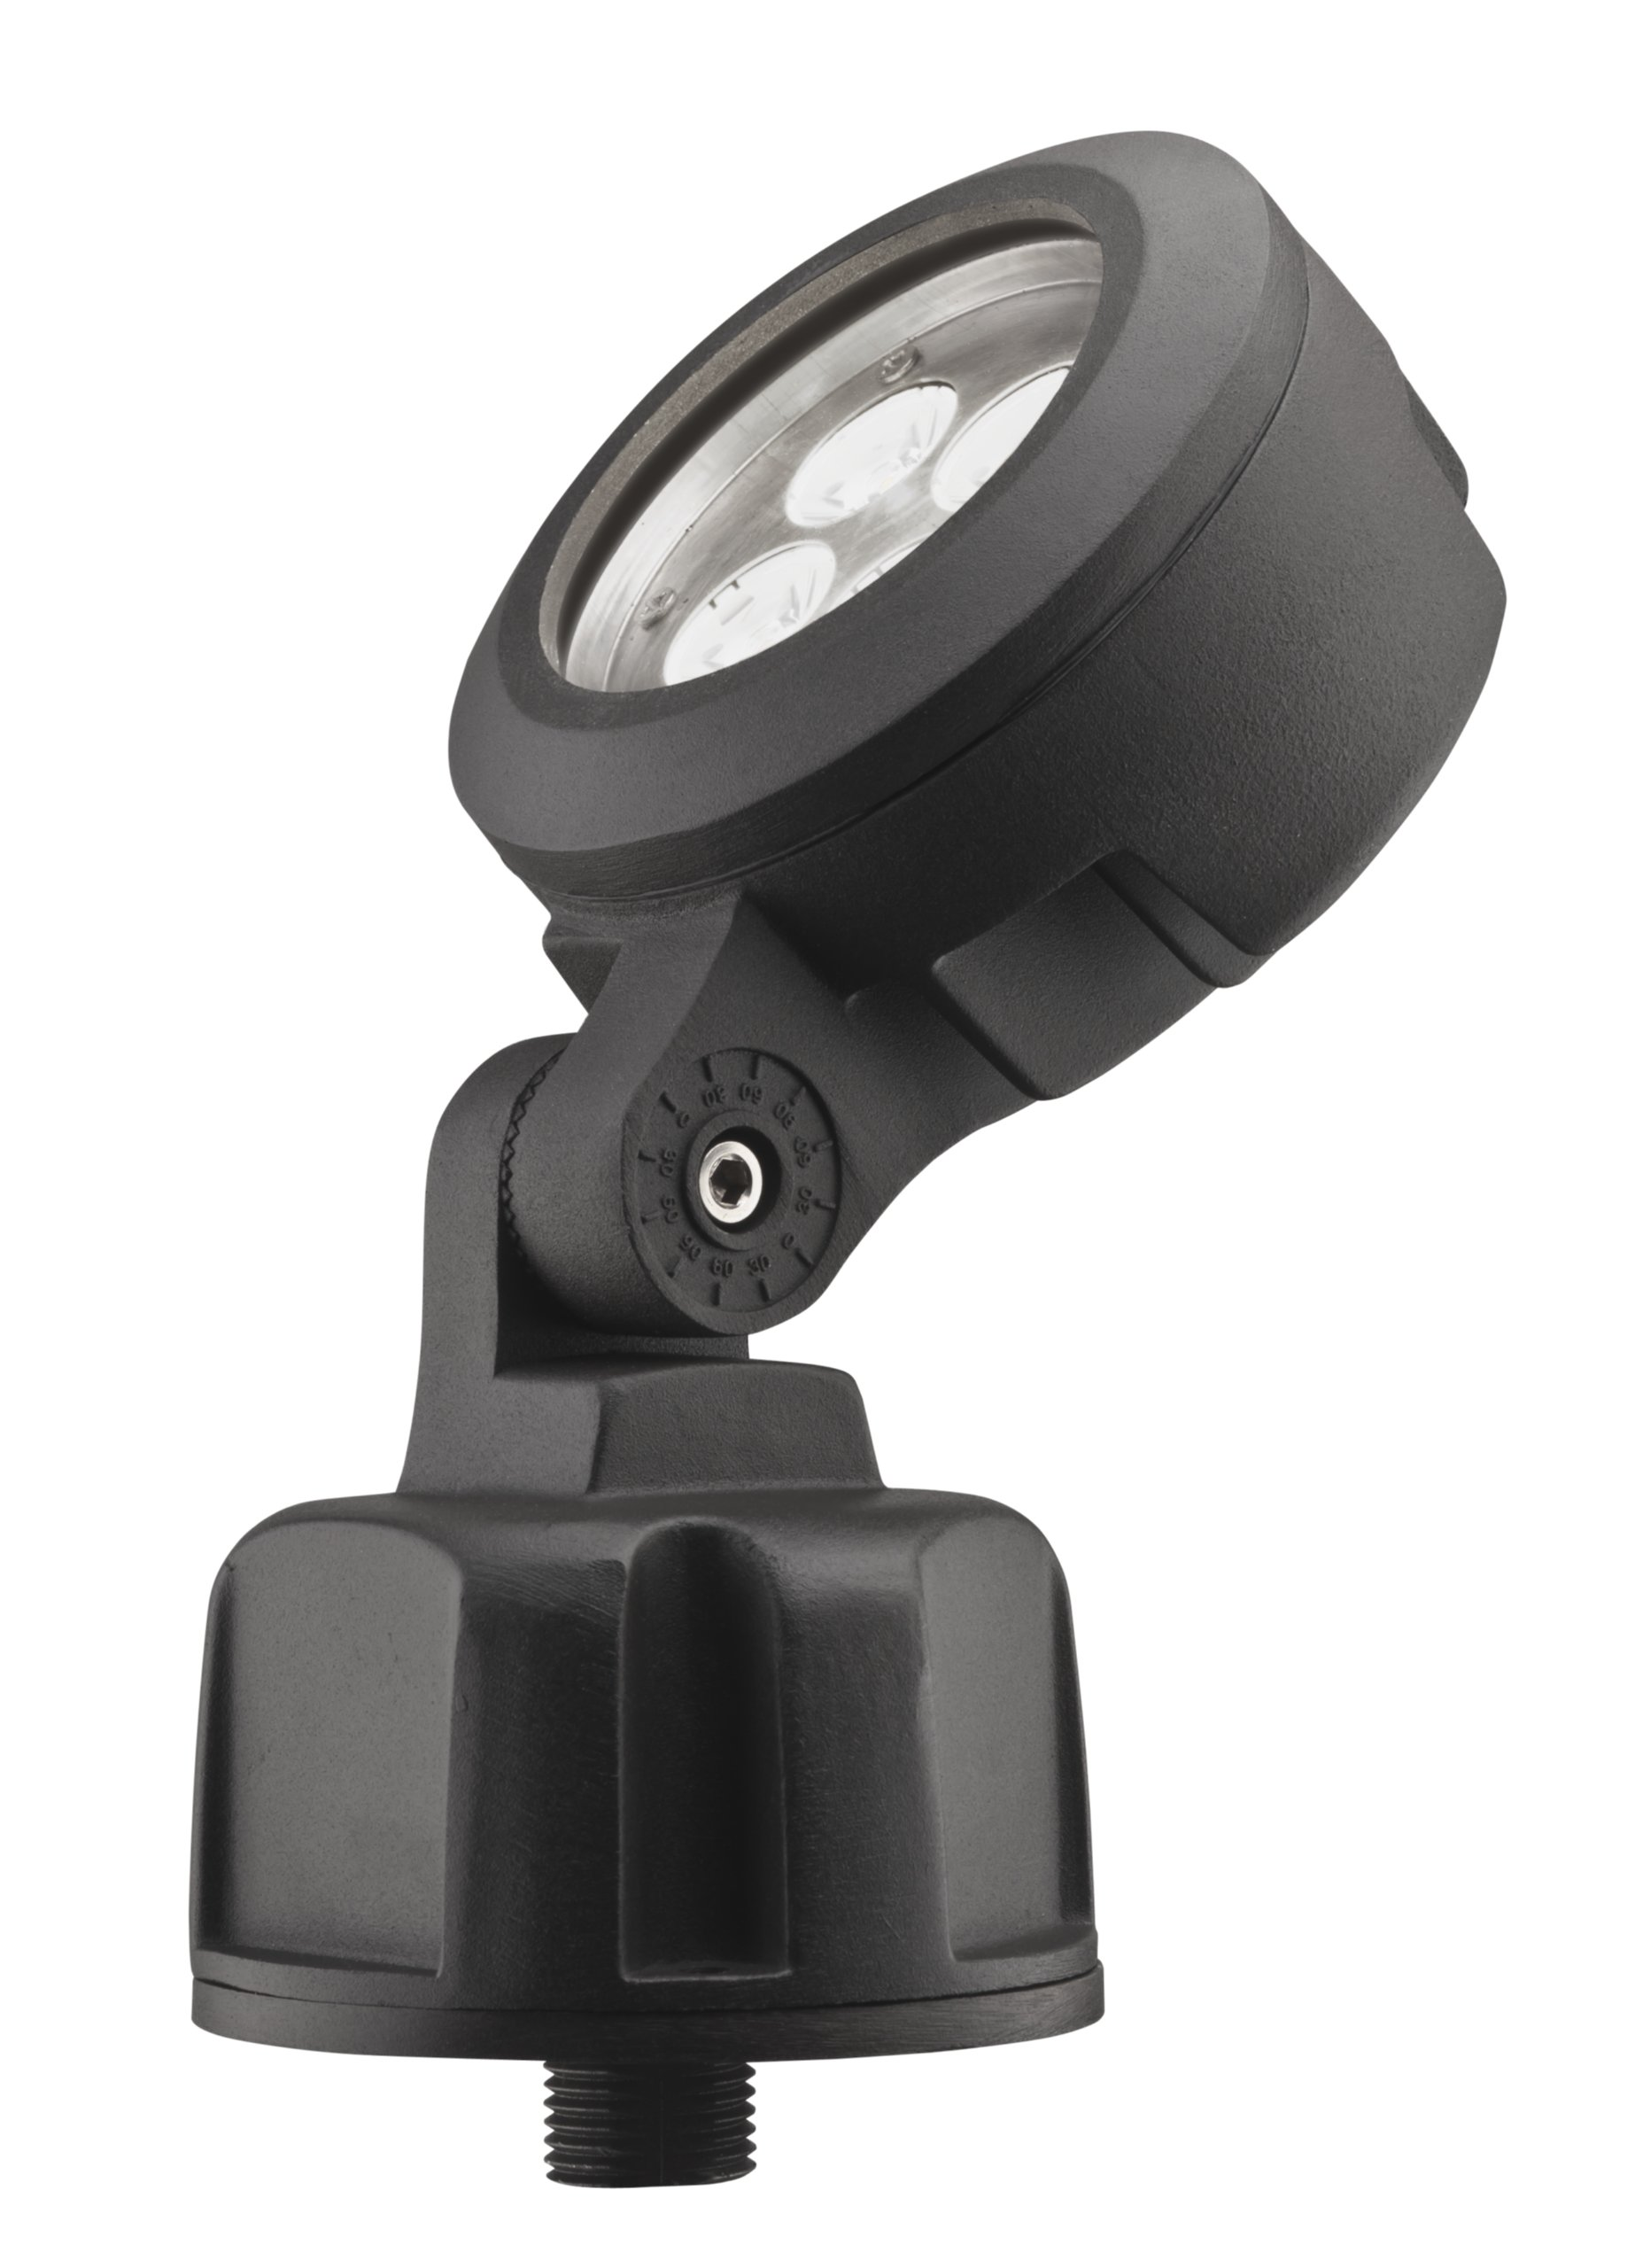 Lithonia Lighting OLBS 8 50K DDB M6 Outdoor LED Bullet 8-Inch 5000K Spotlight, Black Bronze by Lithonia Lighting